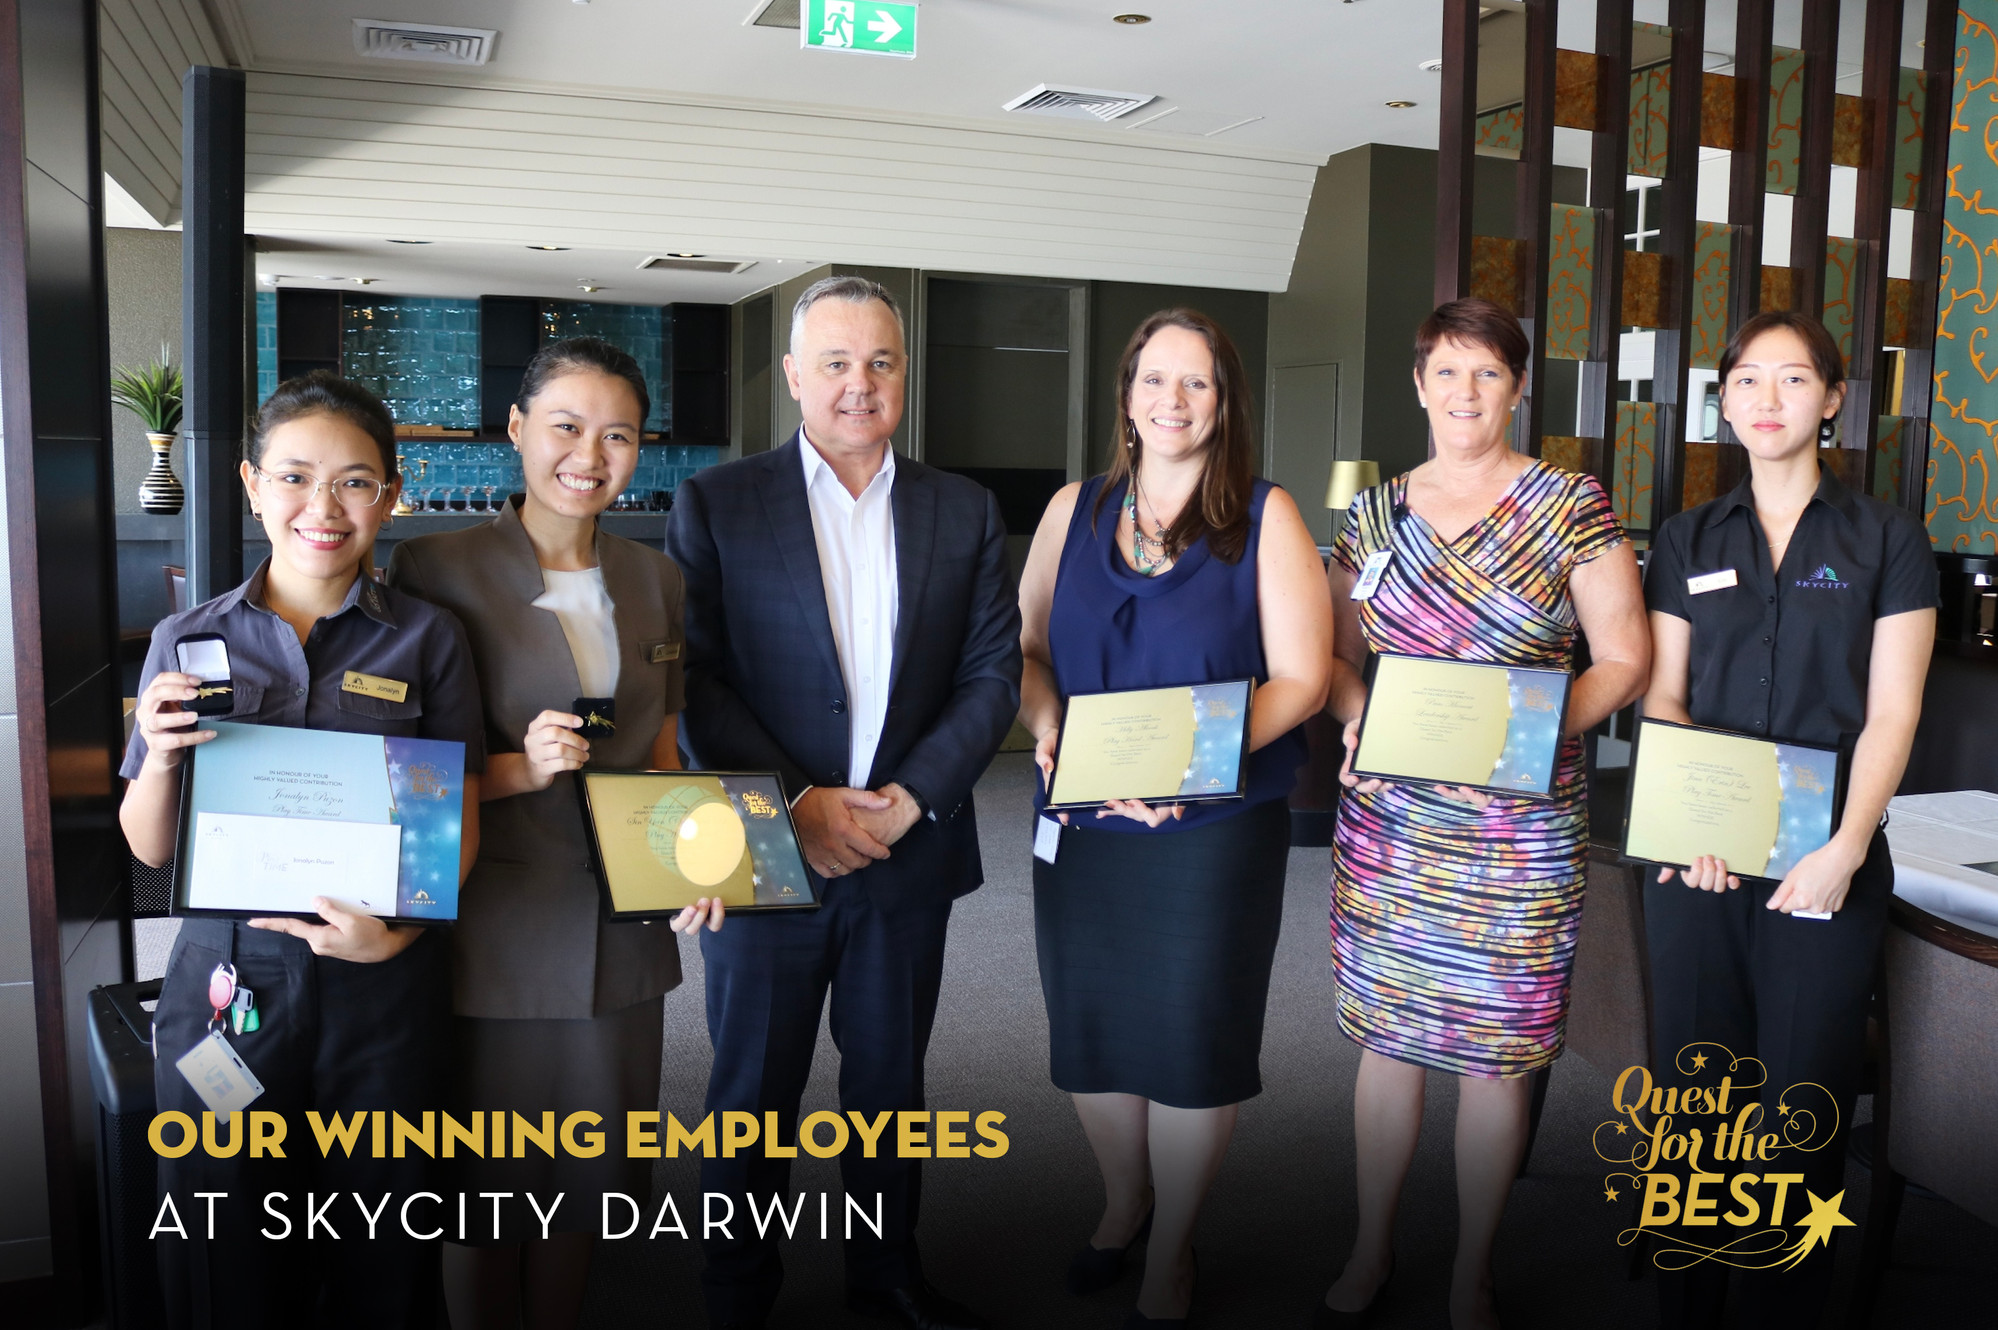 Congratulations To Our Latest Quest For The Best Winners At Skycity Darwin